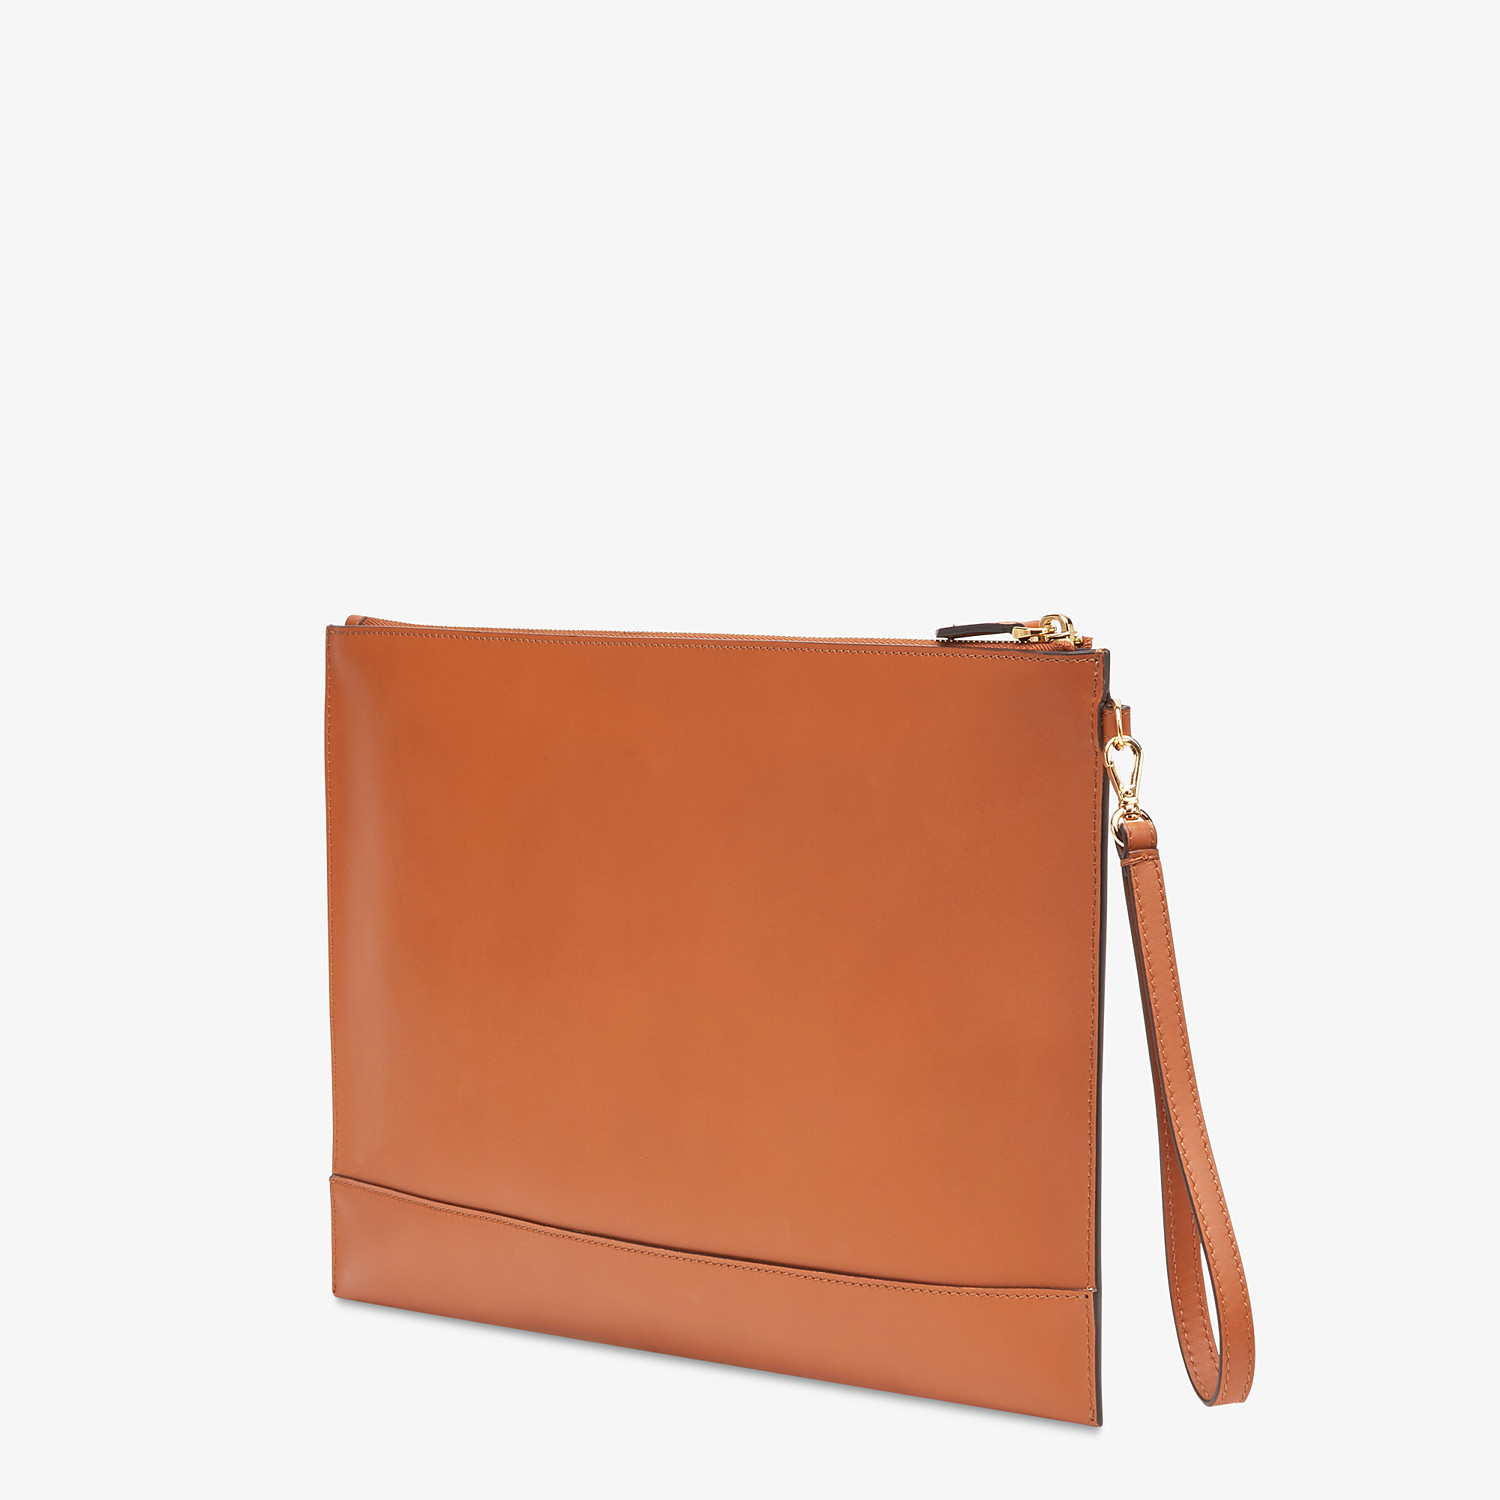 FENDI LARGE FLAT POUCH - Brown leather pouch - view 3 detail